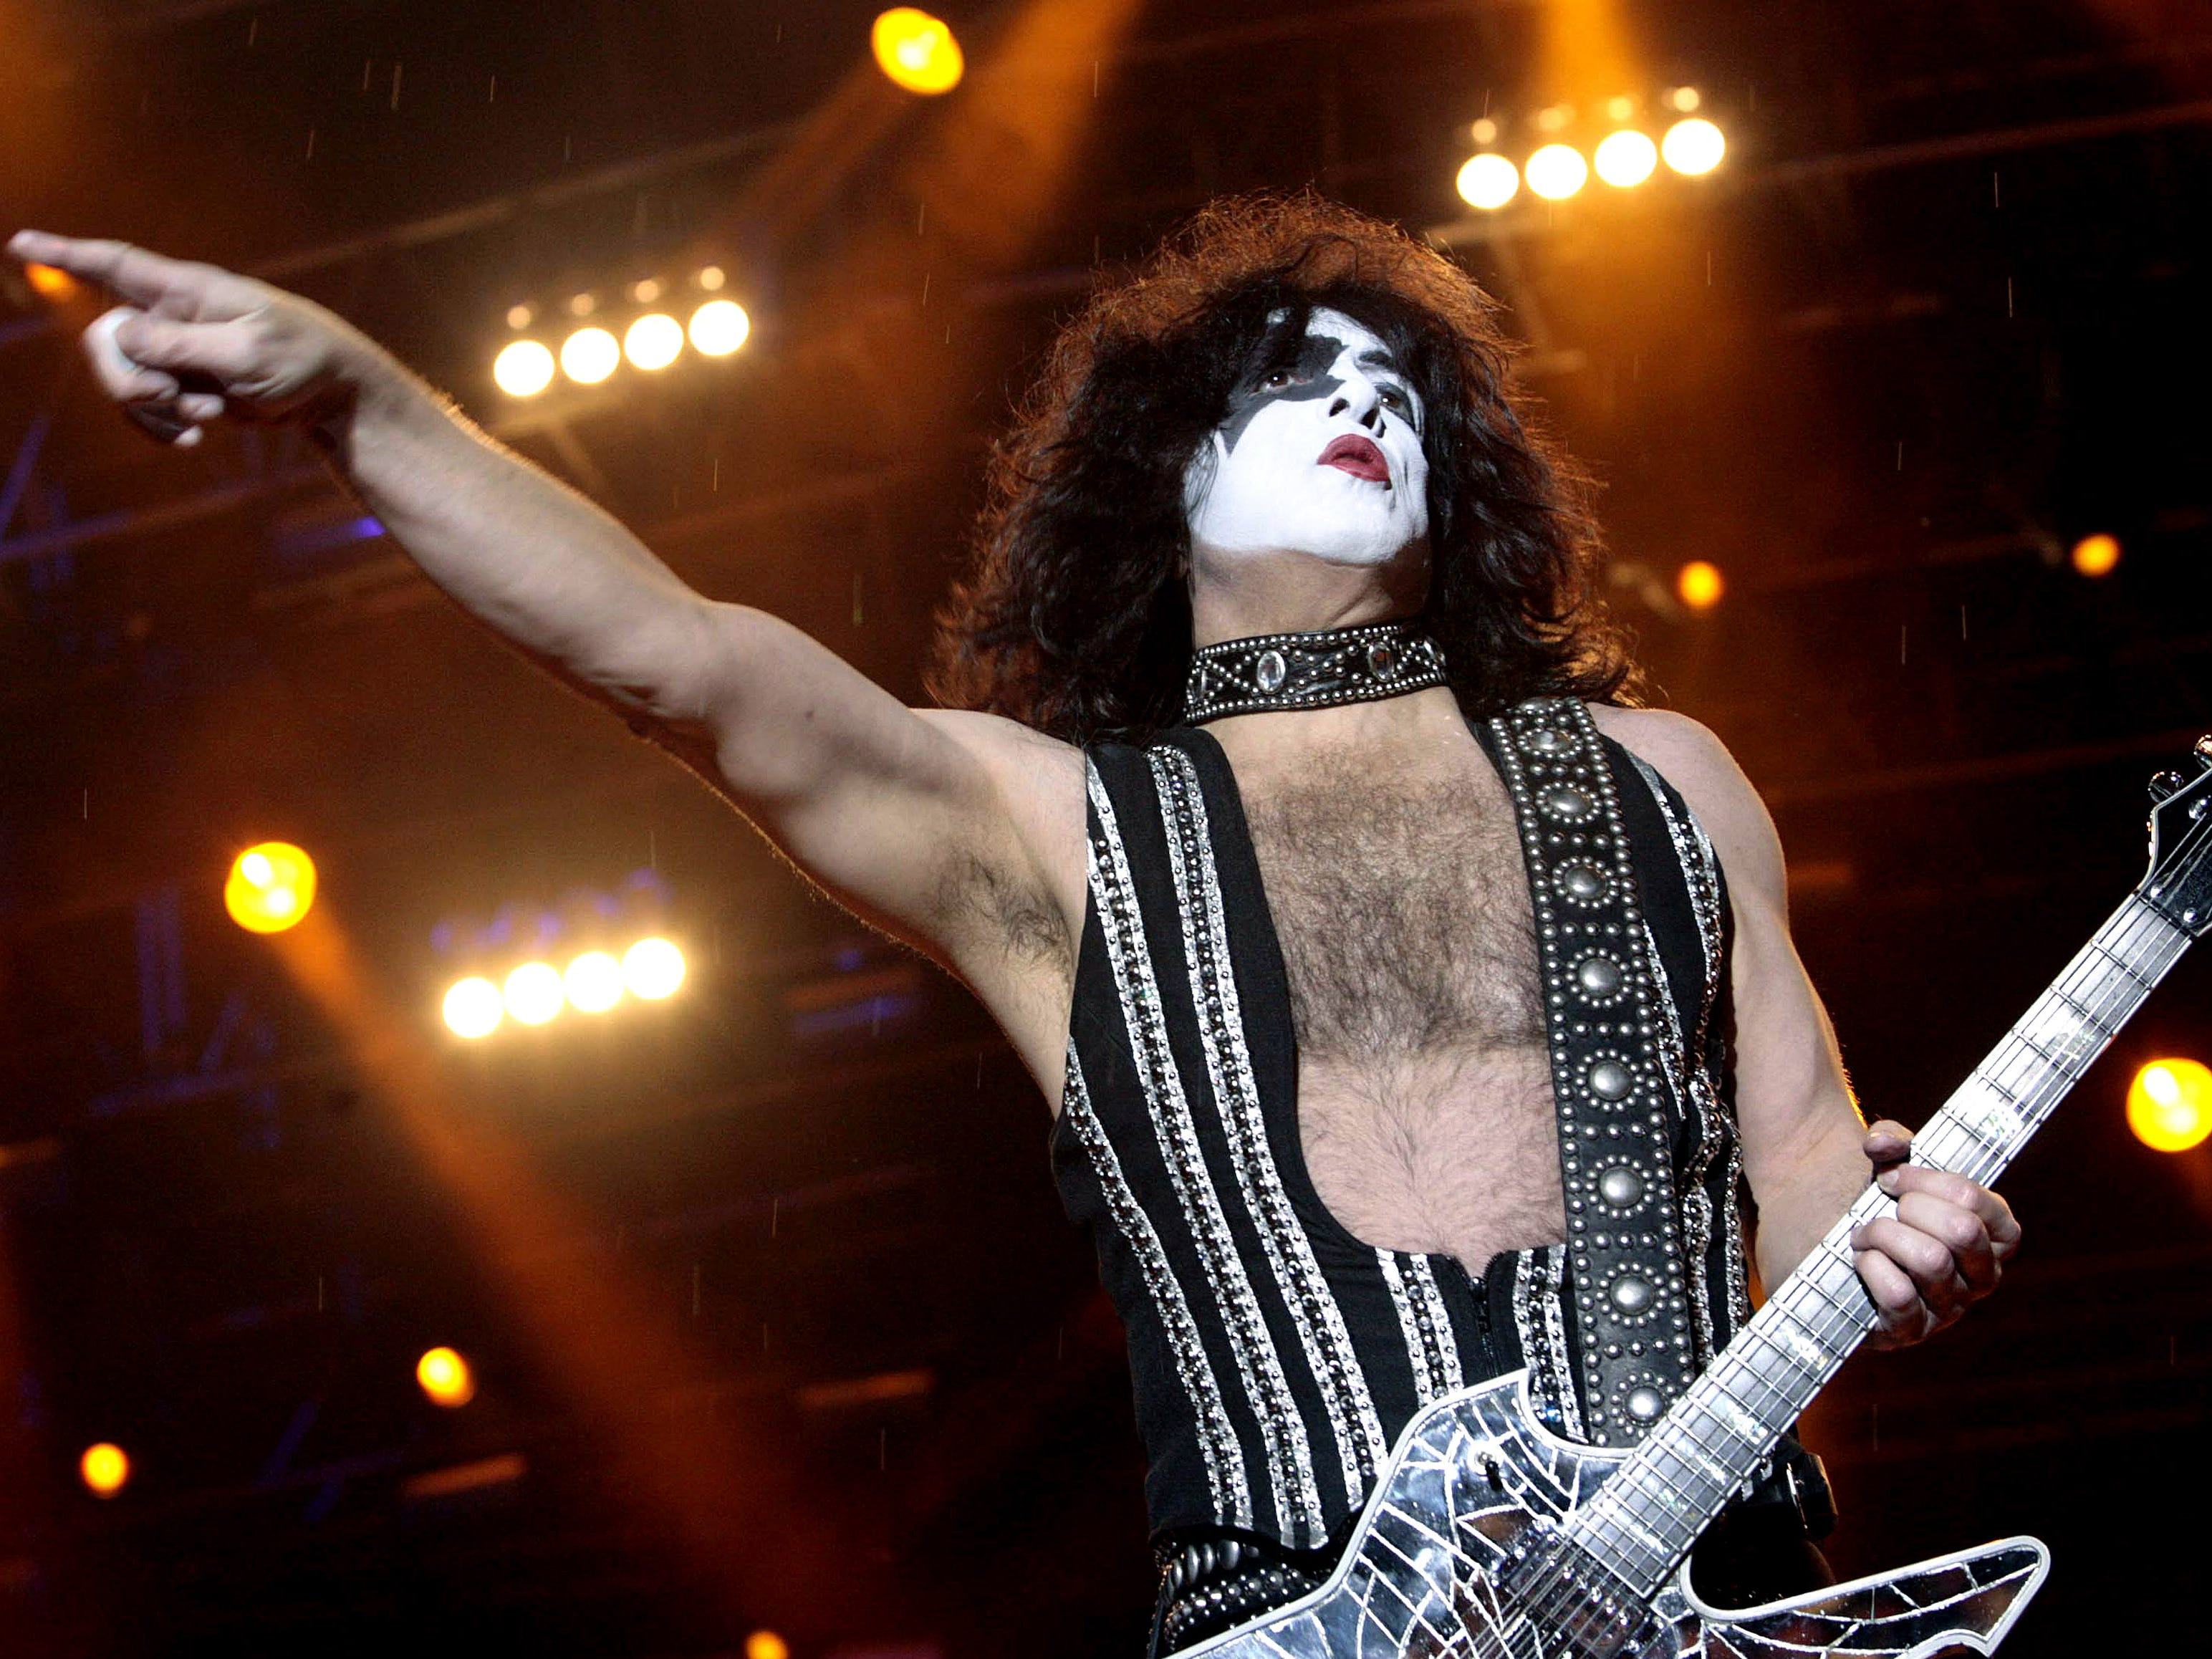 U.S. rock band kiss guitarist Paul Stanley performs during his concert on April 11, 2009, in Bogota. The concert is part of the band's tour to celebrate their 35th anniversary. AFP PHOTO/STR / AFP / -        (Photo credit should read -/AFP/Getty Images)